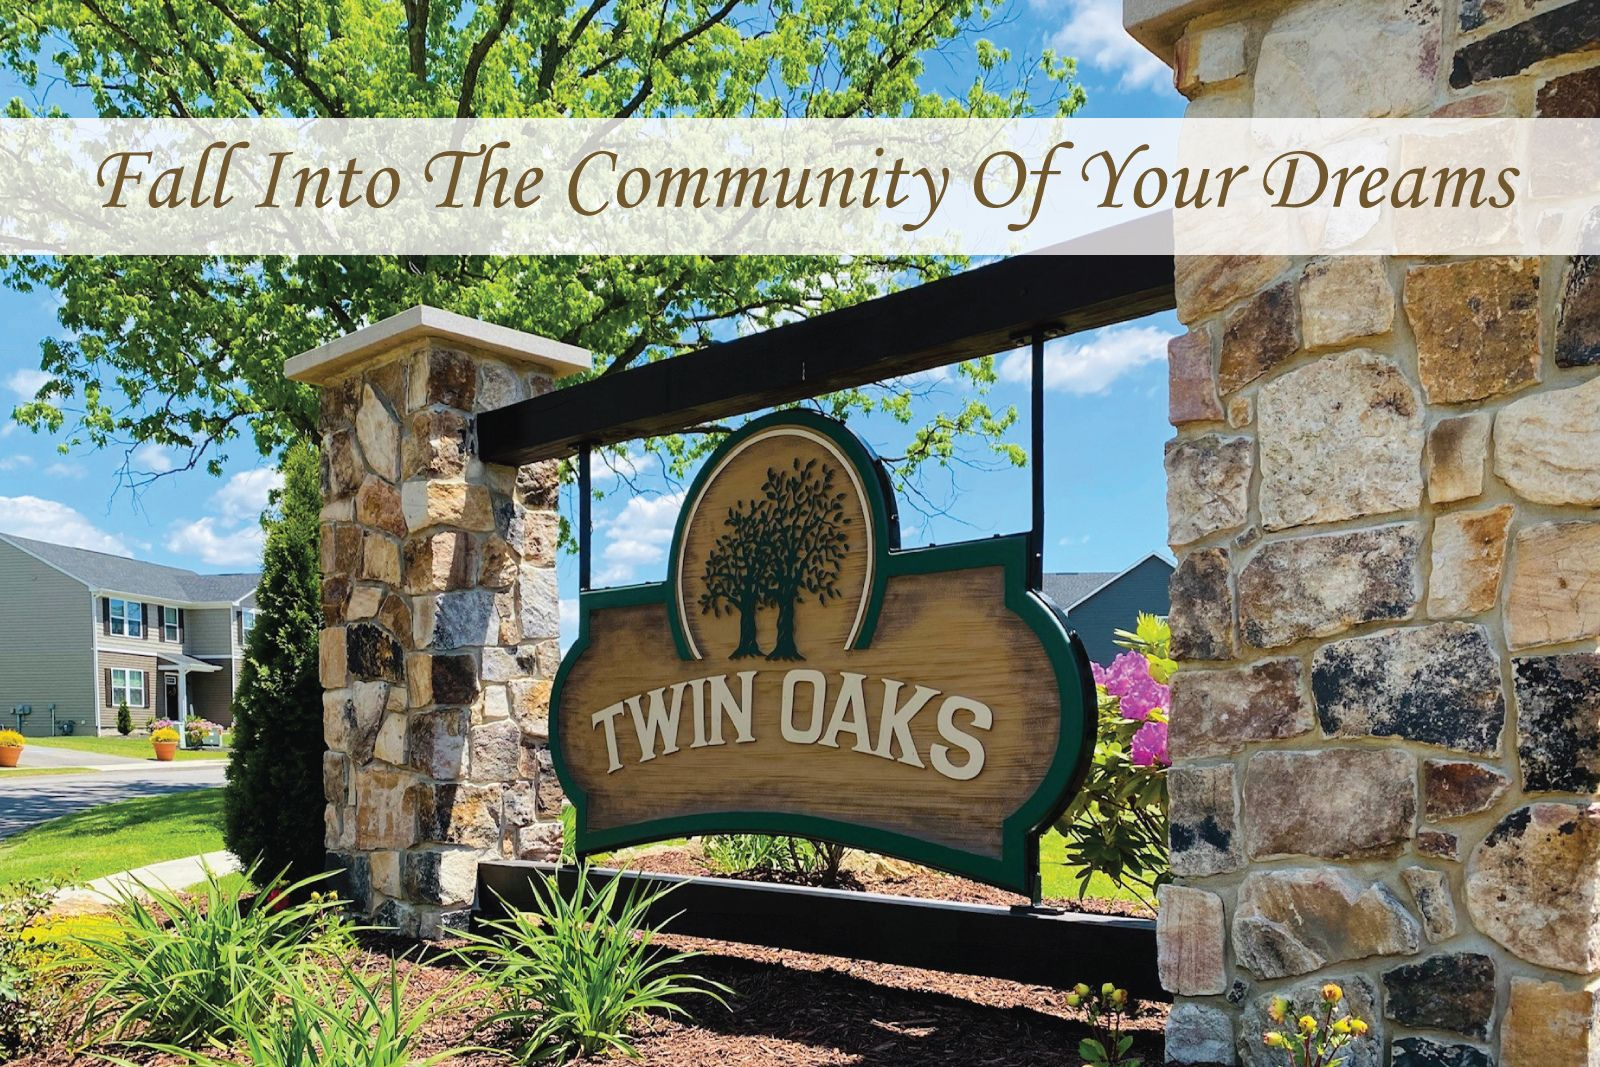 WELCOME HOME TO TWIN OAKS! SARVER'S PREMIERE NEW HOME COMMUNITY!:Lowest price new construction in Freeport School District w/ low Butler County taxes! Spacious homes offering 3-5 bedrooms with large usable homesites.Click here to schedule your appointment.